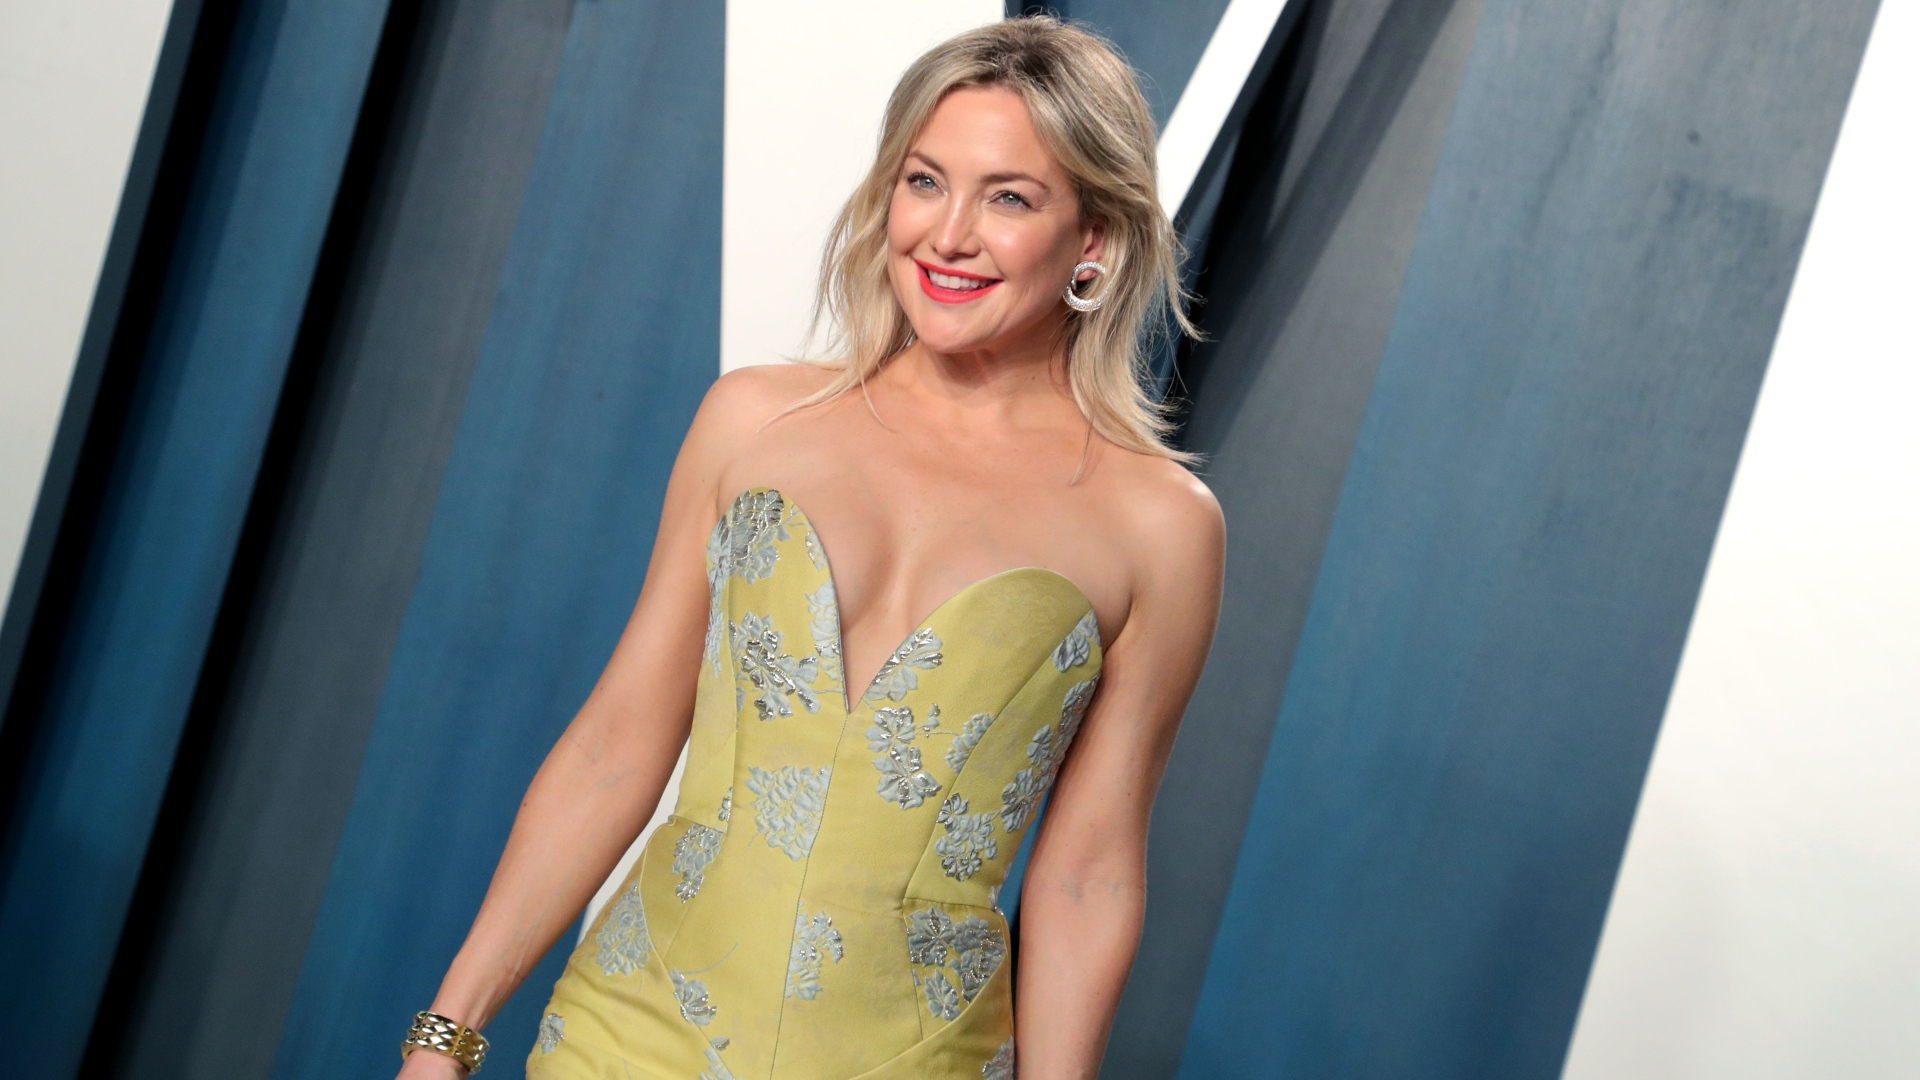 Kate Hudson's New Family Photo of 8-Year-Old Bingham & Baby Rani Rose Is Too Sweet